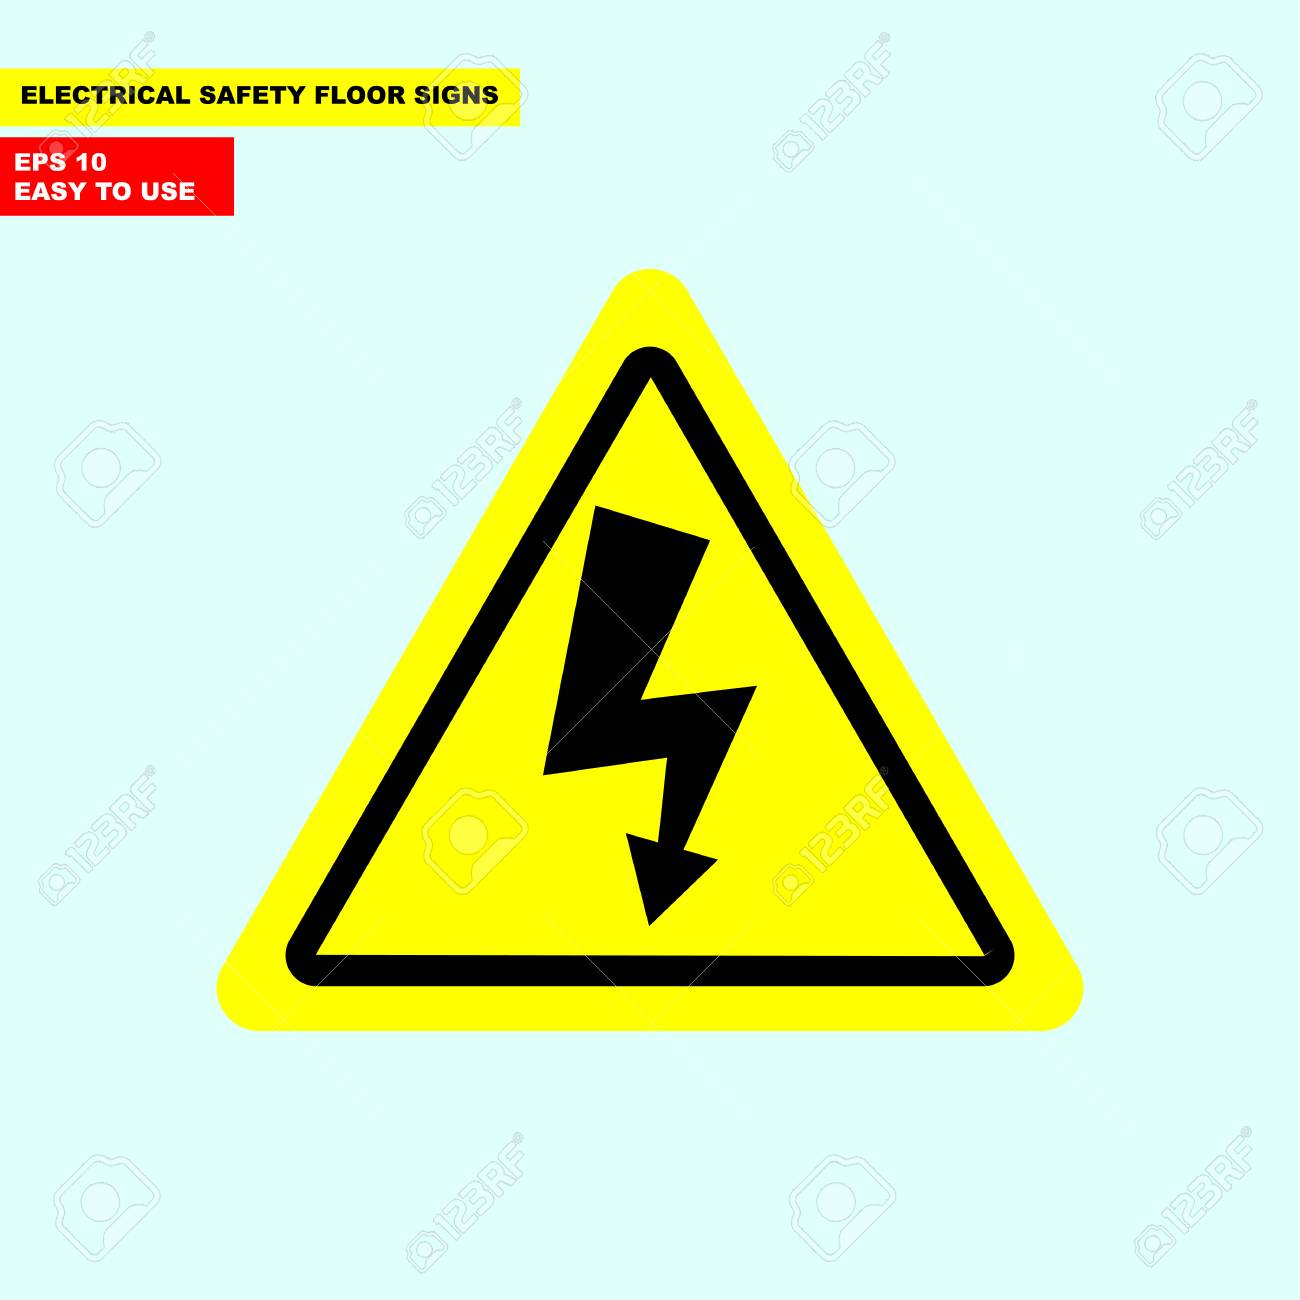 Danger High Voltage Symbol Royalty Free Cliparts Vectors And Stock